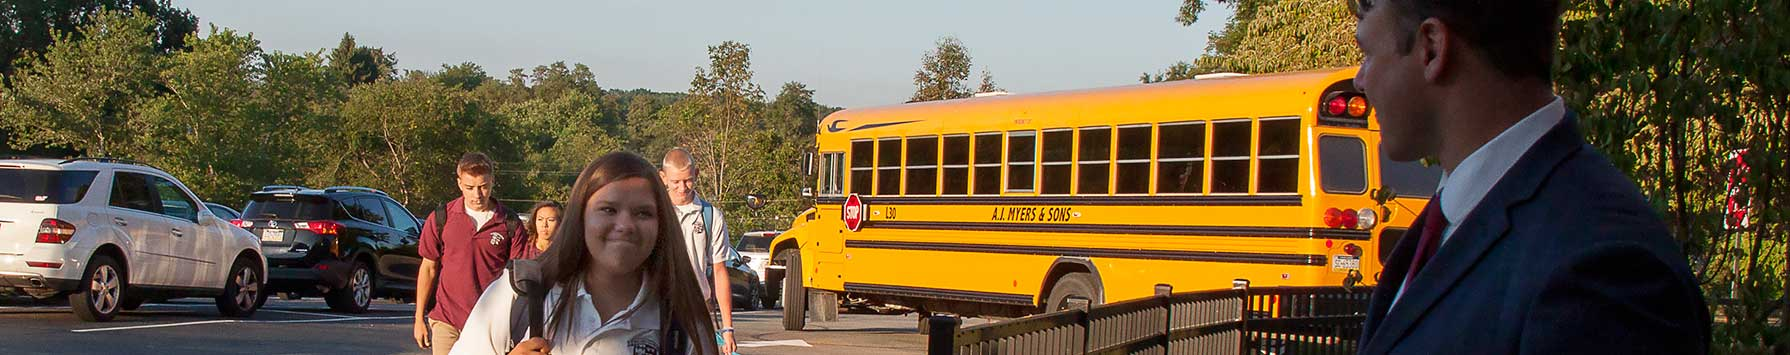 students getting off buses